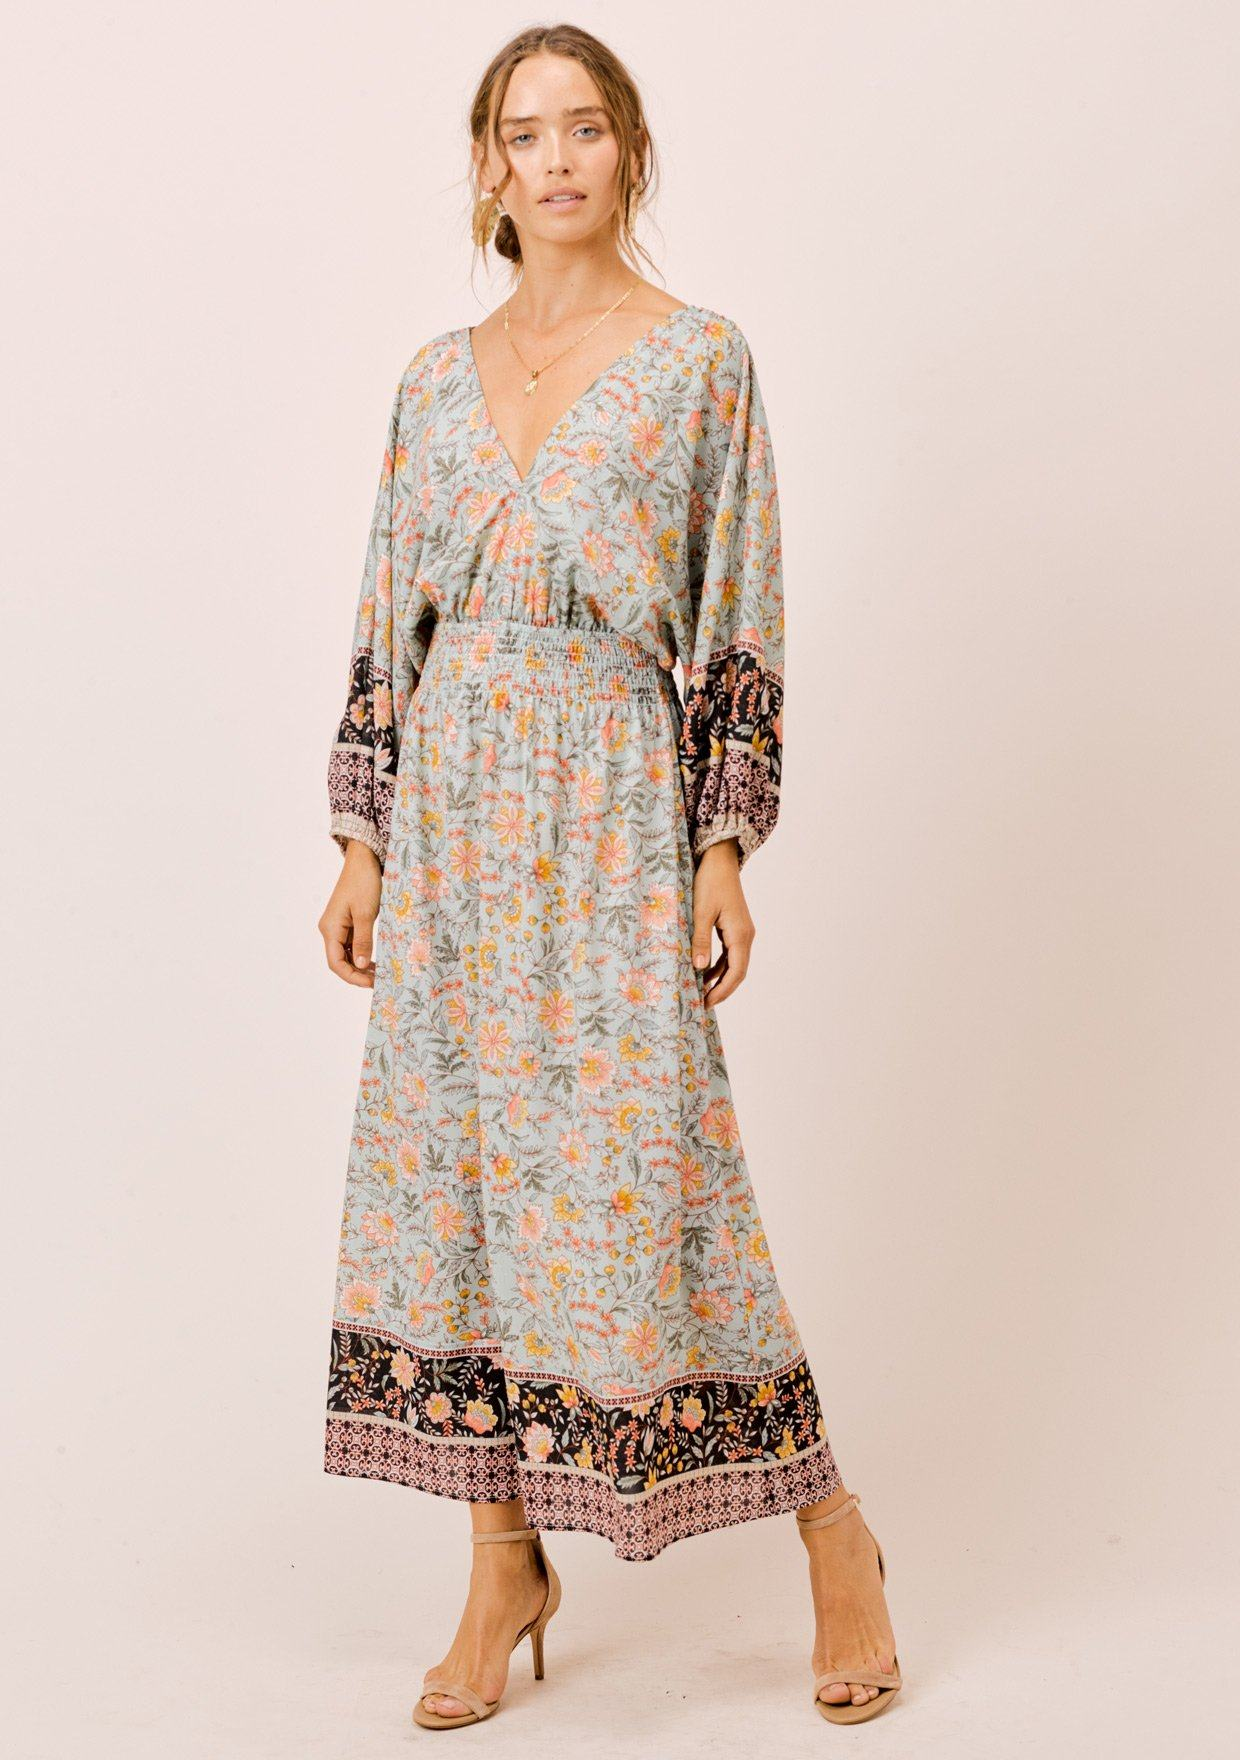 [Color: Mint] Lovestitch relaxed fit light blue floral long volume sleeve maxi dress with a flattering smocked waist, V-neckline and open tie-back detail. The perfect casual dreamy maxi dress.